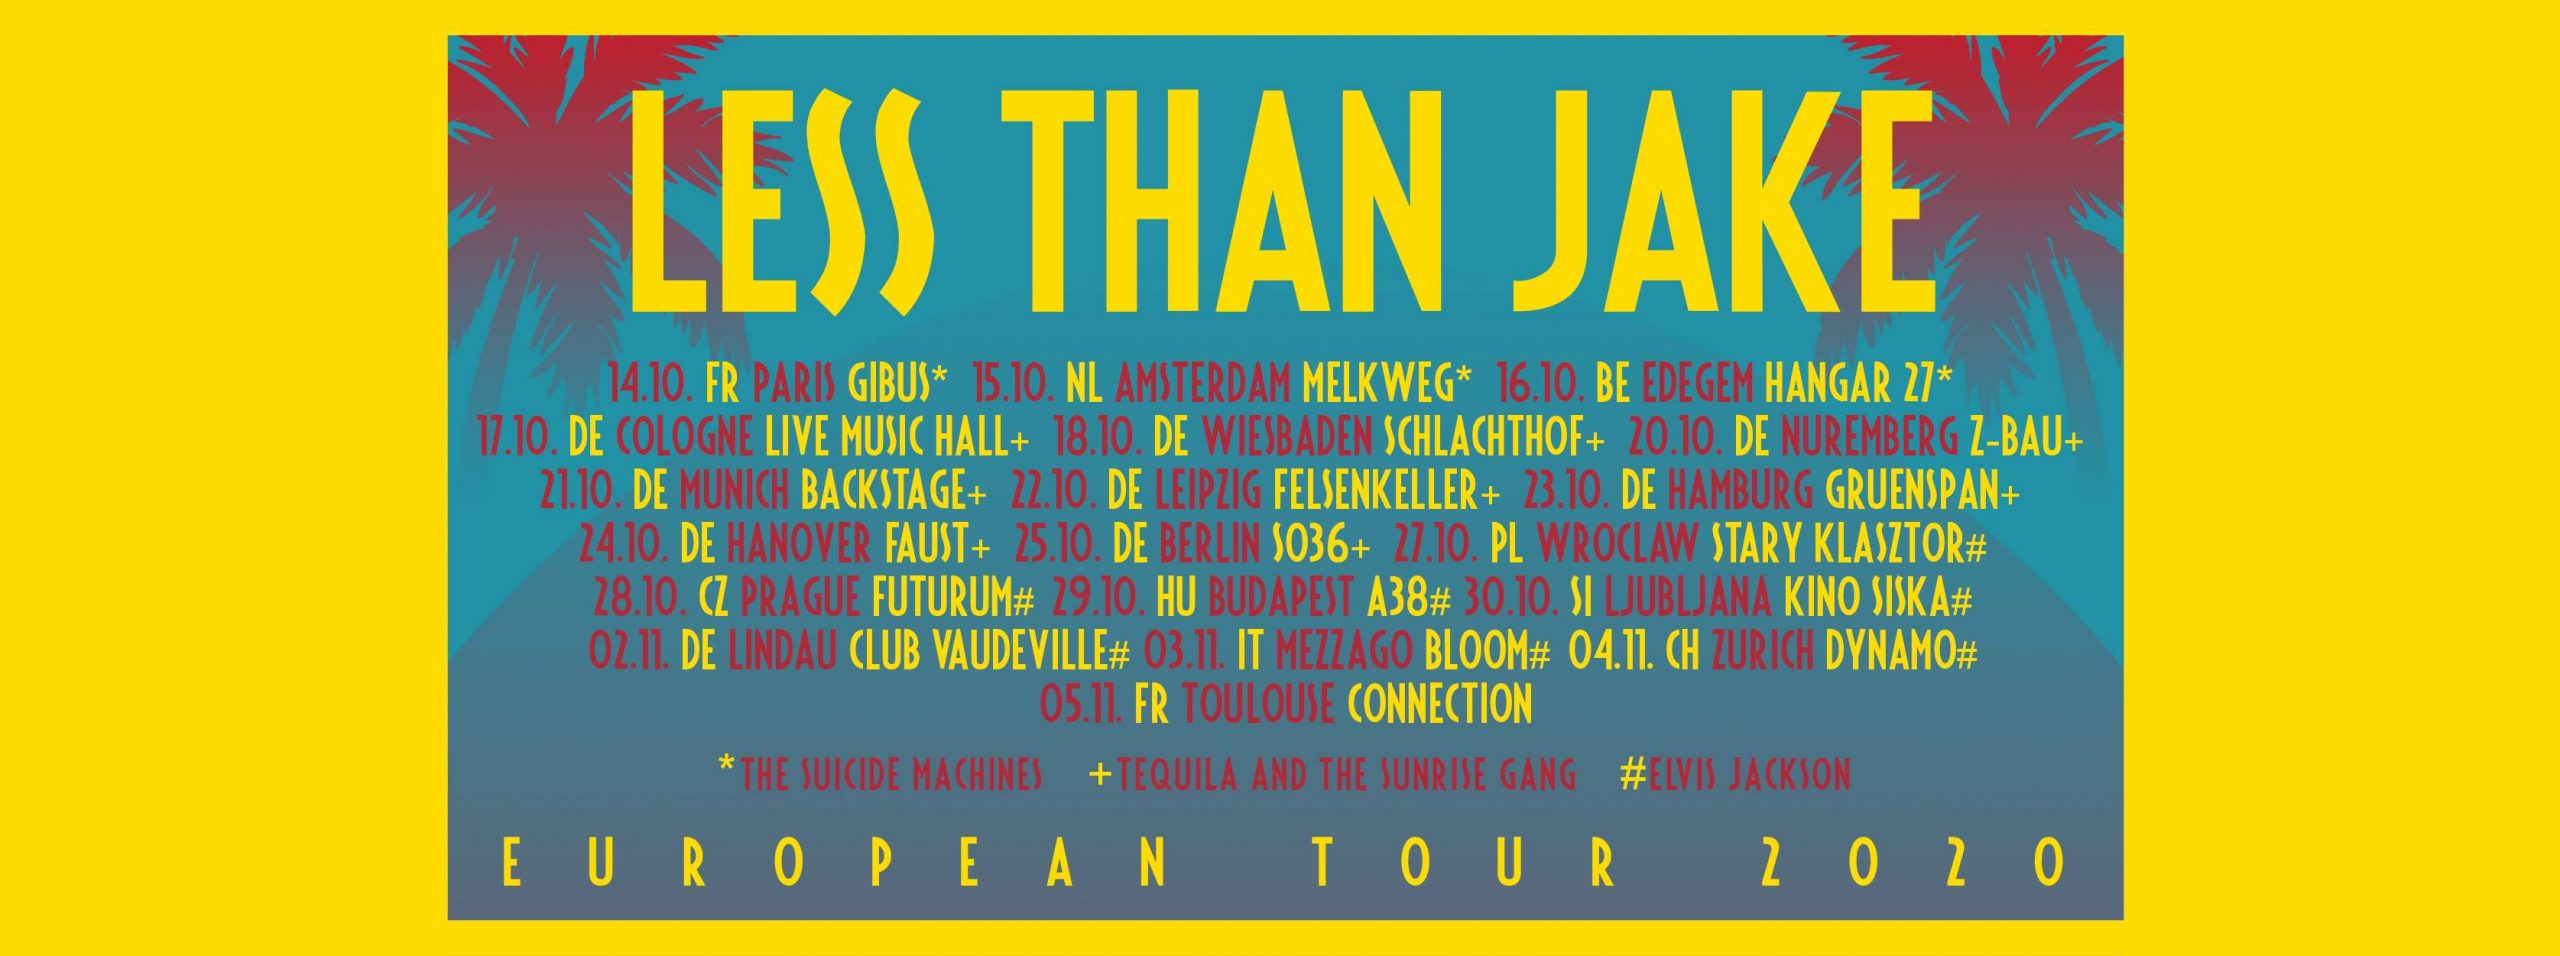 Less Than Jake - European Tour